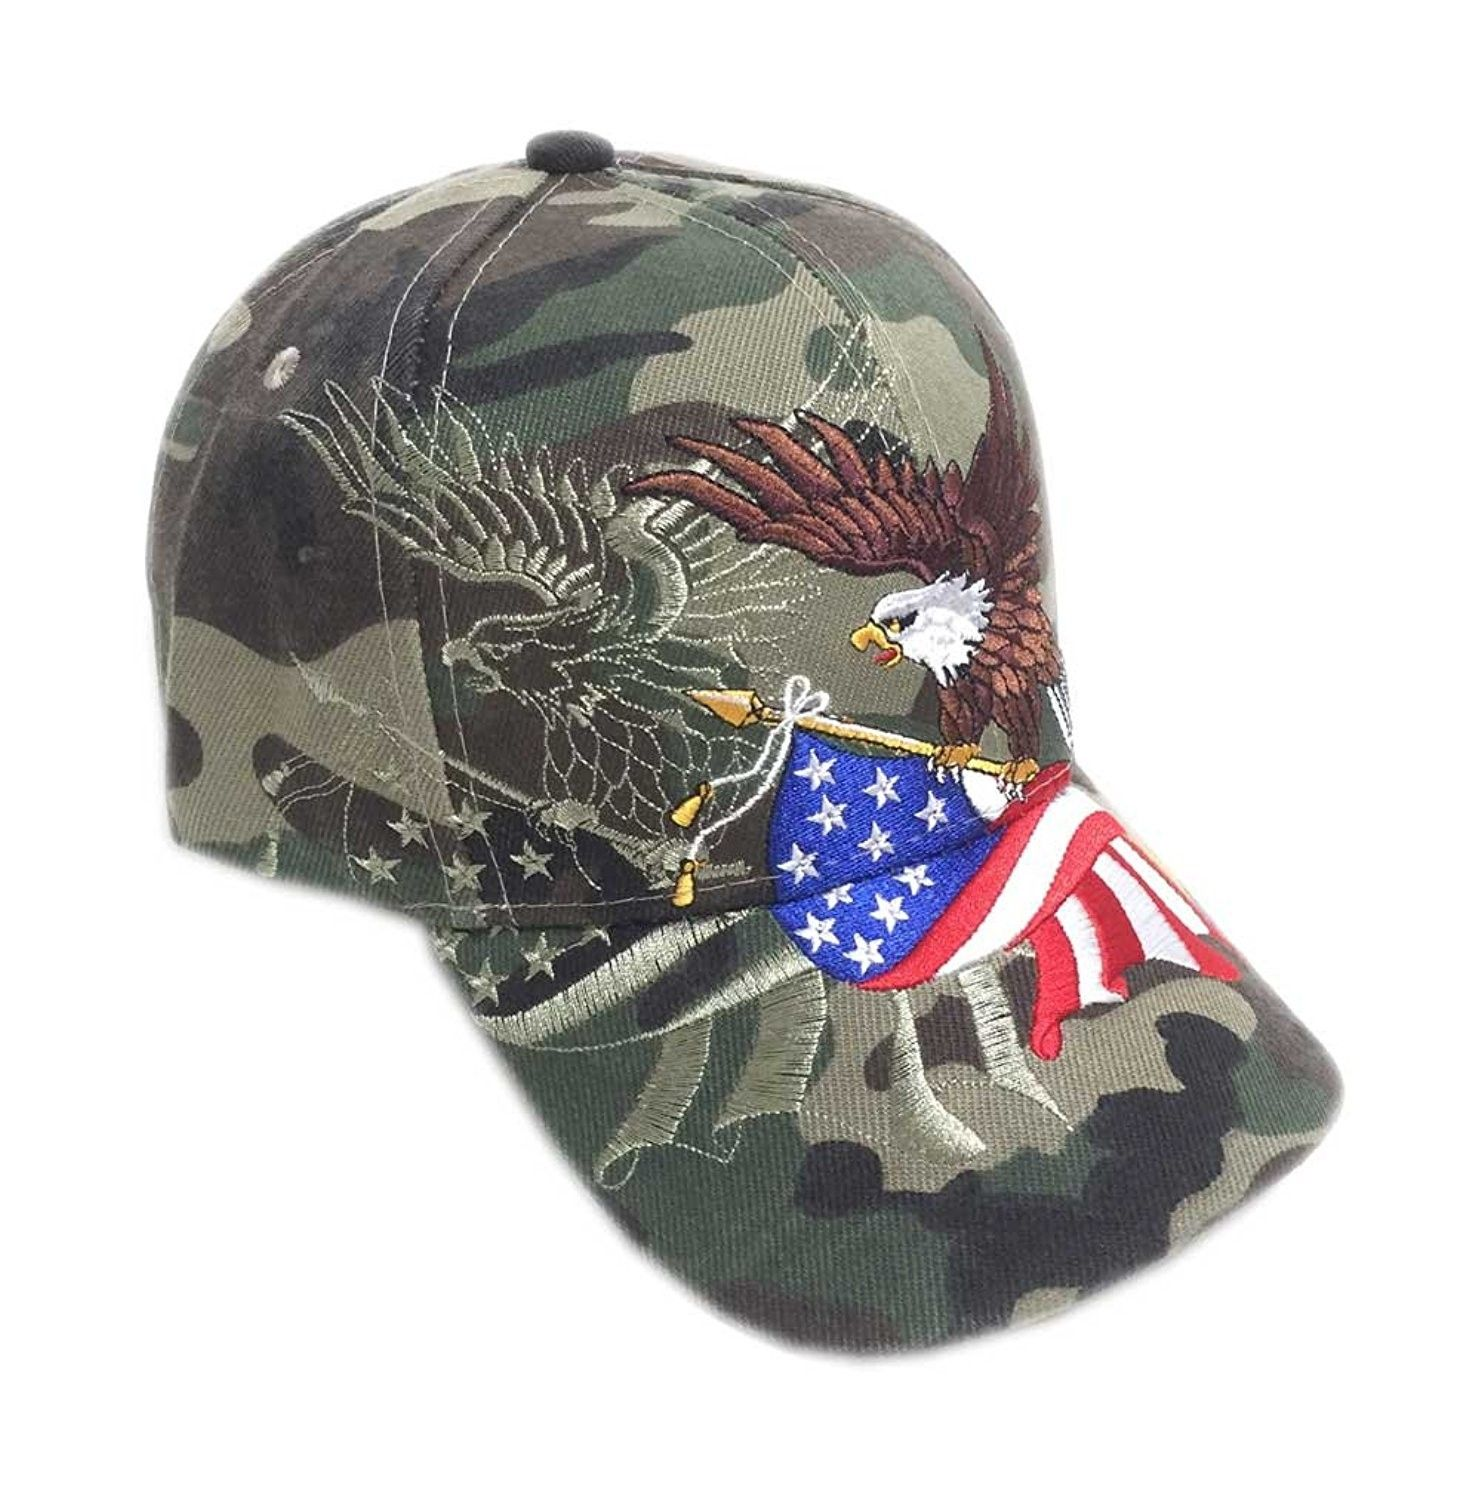 83d4fdad1e2 Patriotic American Eagle and American Flag Baseball Cap USA 3D Embroidery -  Military Camo - CC120061ZMR - Hats   Caps